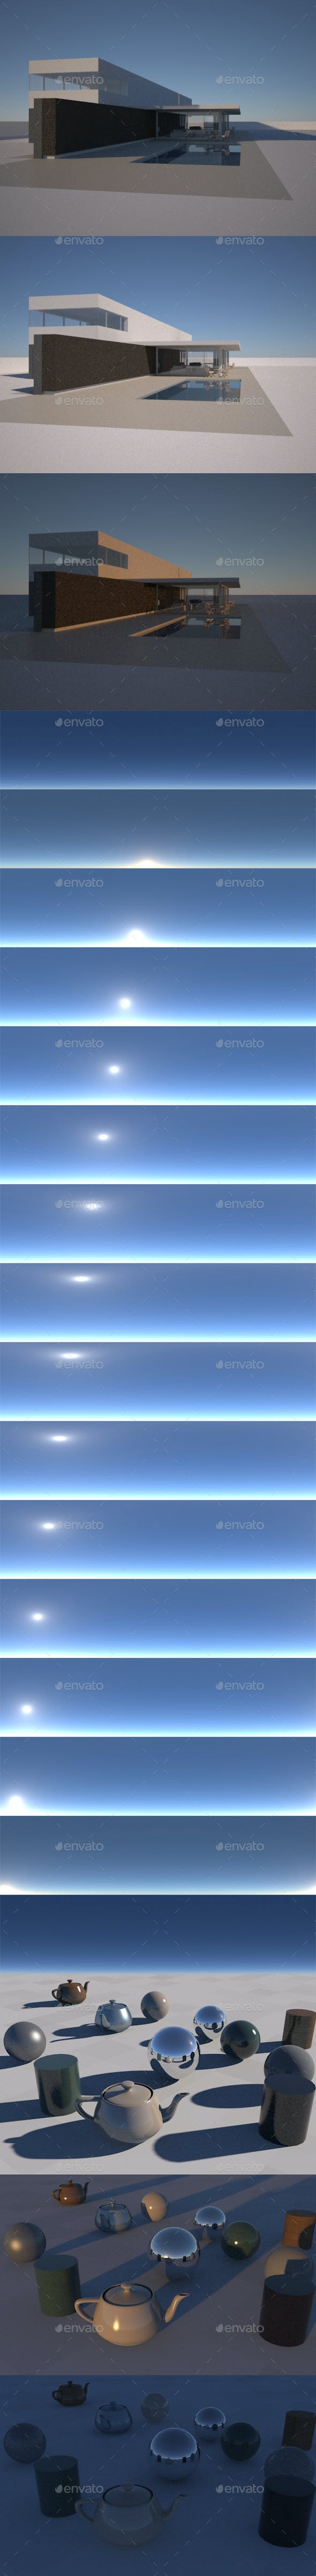 Clear Sky Pack - Timelapse 16 EXR/HDR pics - 3DOcean Item for Sale